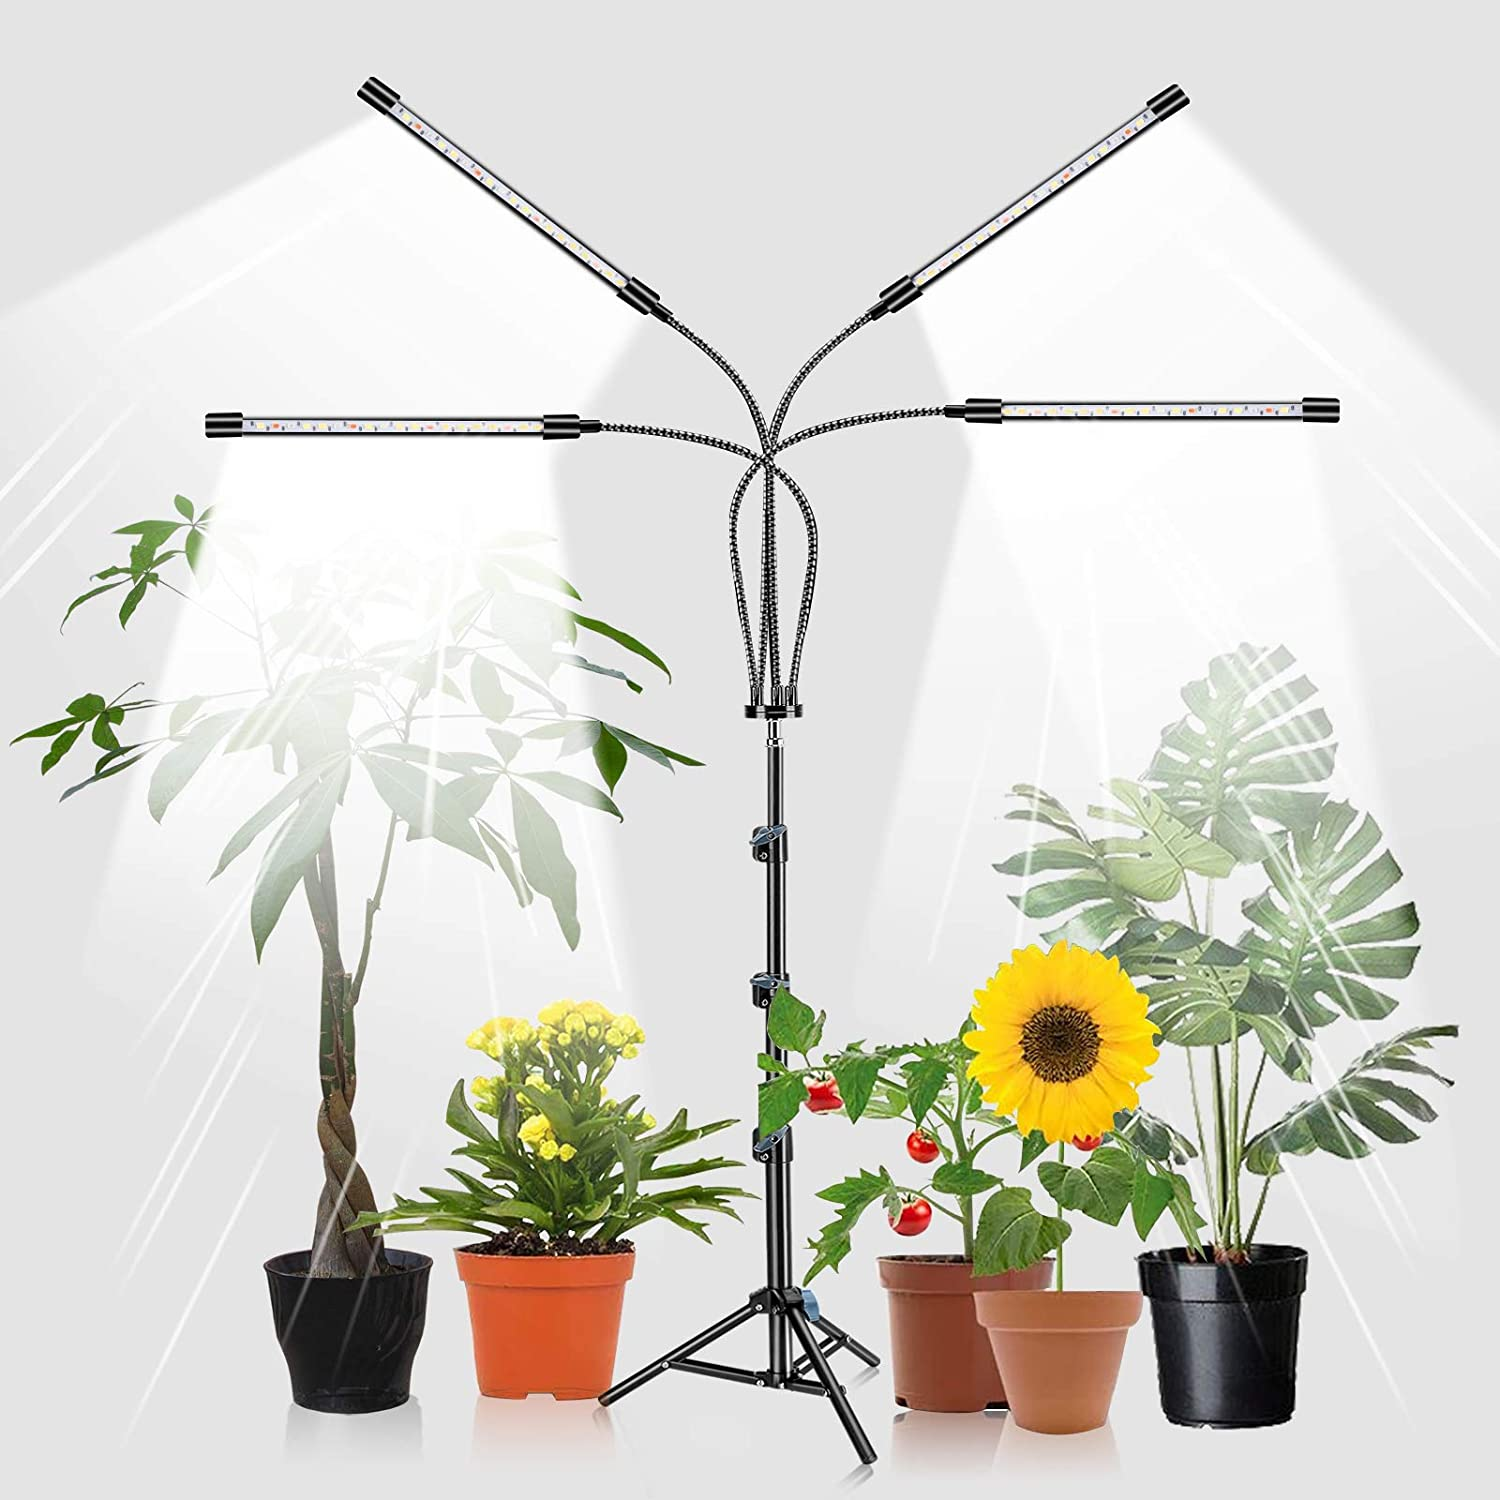 Grow Light with Stand, 80 LED Floor Standing Plant Growing Lamp with Full Spectrum for Indoor Plants, 3 Modes & 10 Dimmable Levels with 4/8/12H Timer (Sunlight)